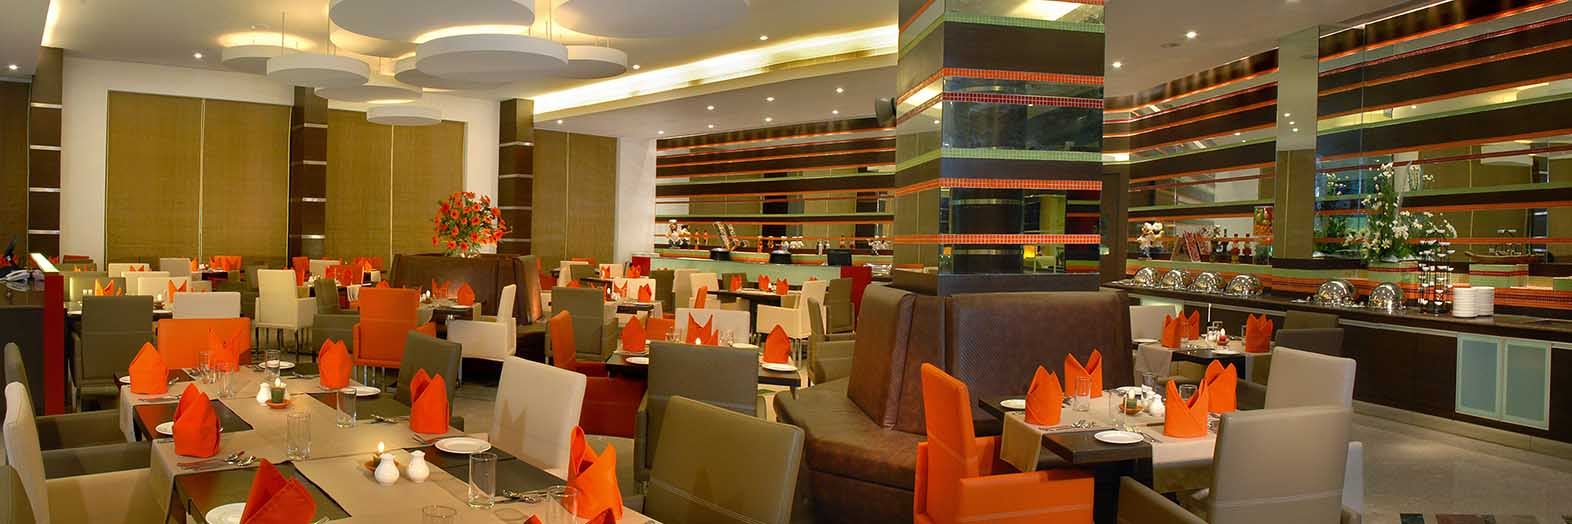 Bengaluru Hotels Overview